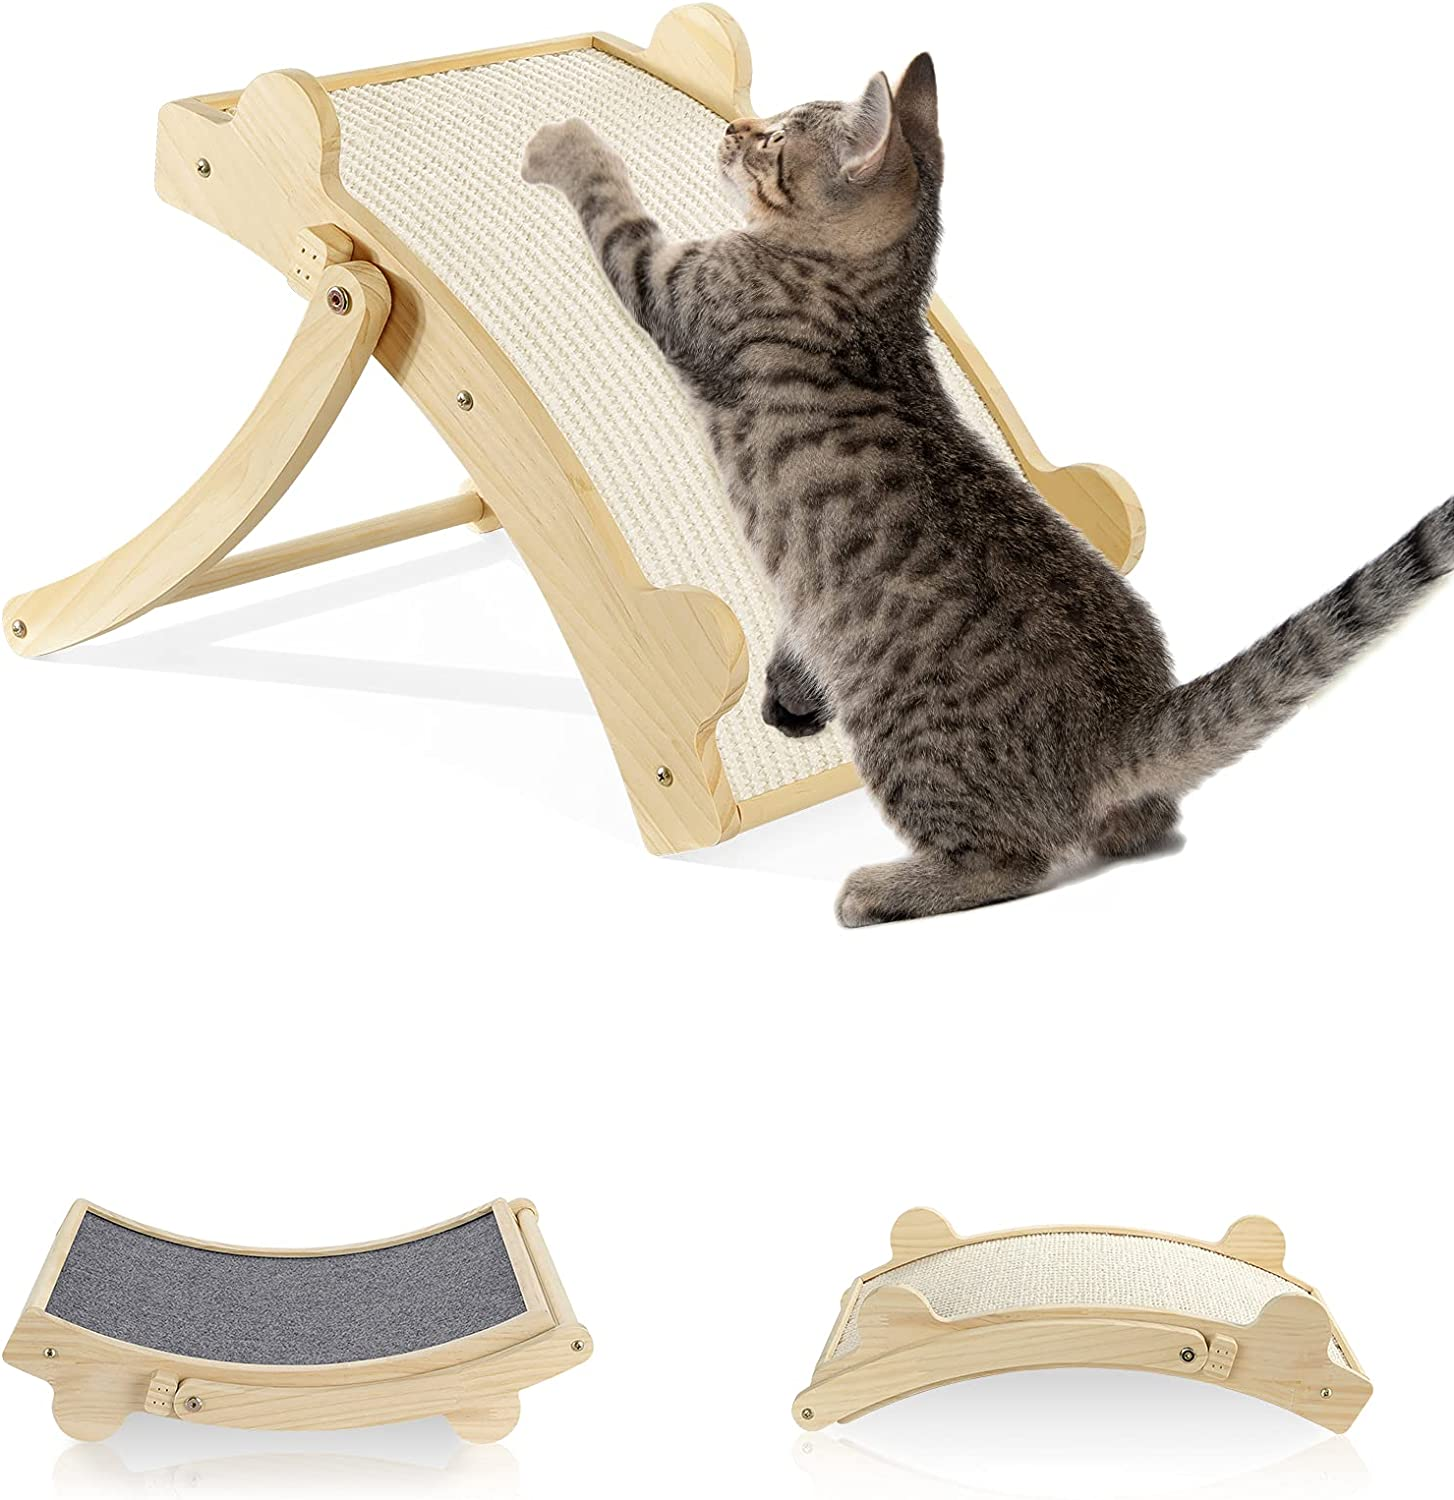 CatRomance Now on sale Cat Scratcher Scratching S Double-Sided Pad Max 50% OFF